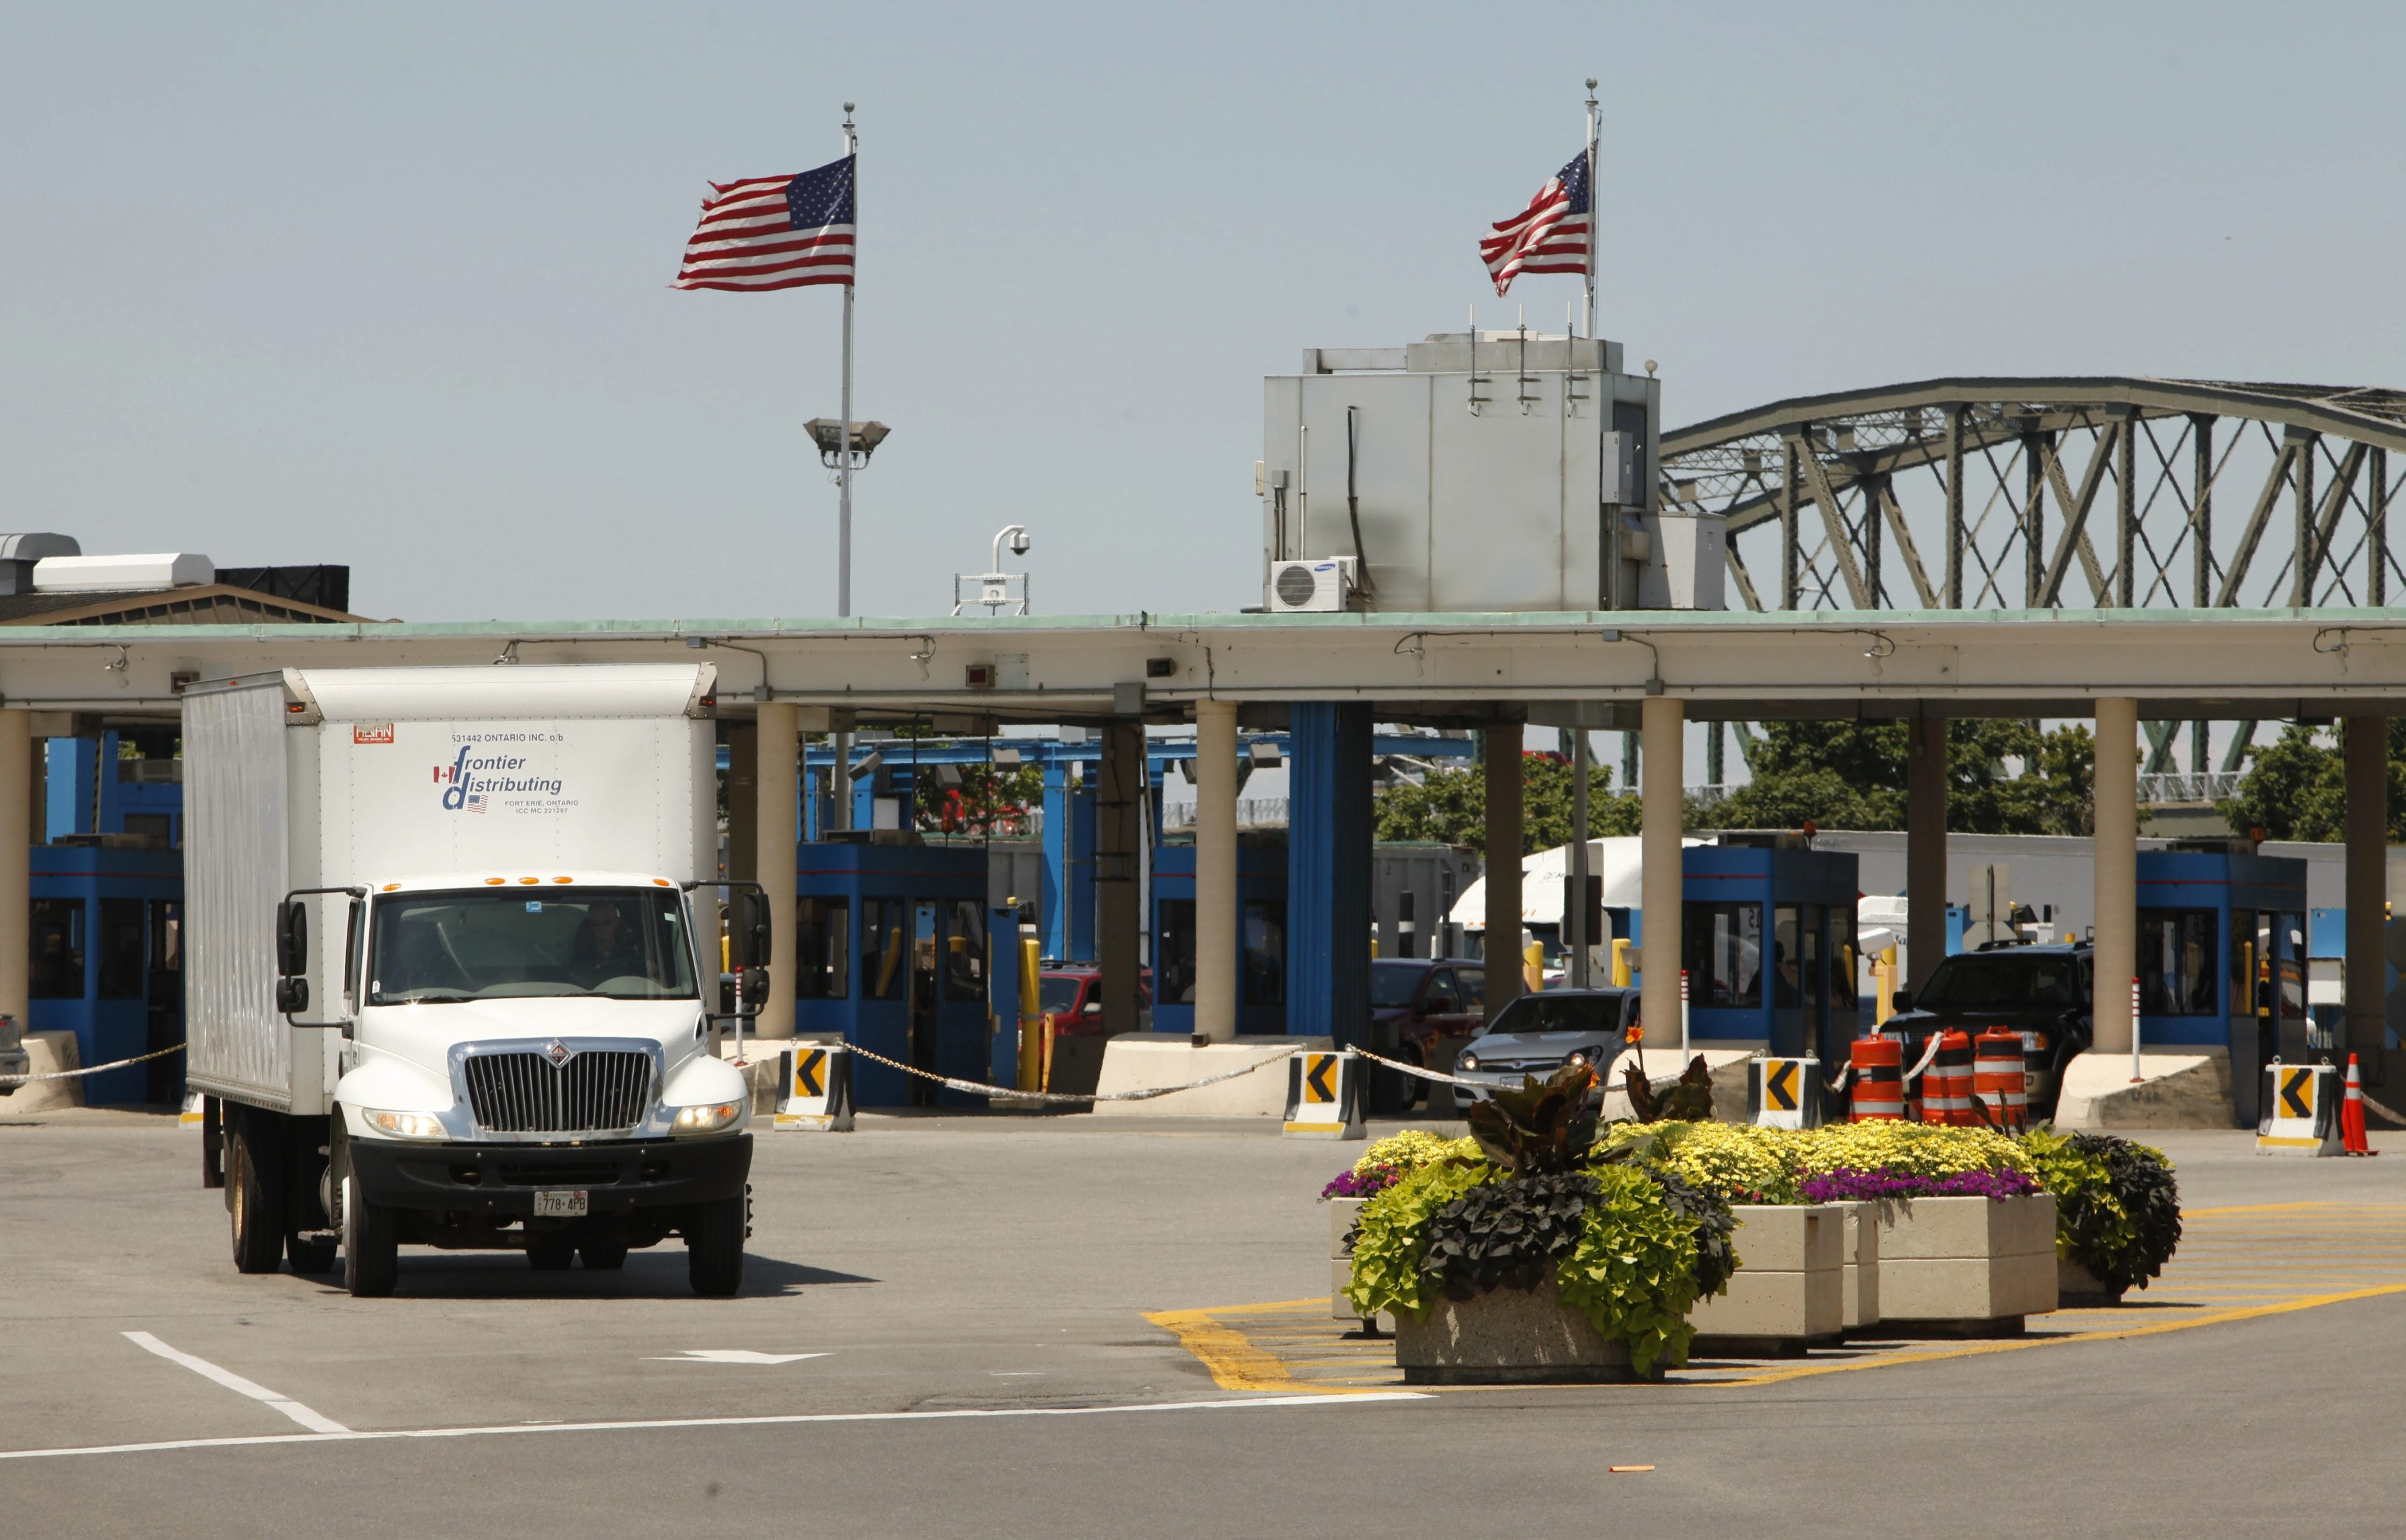 Trucks come and go at the Peace Bridge Plaza in Buffalo. The Federal Highway Administration has approved improvements to the plaza that include direct access from the Niagara Thruway to the bridge.